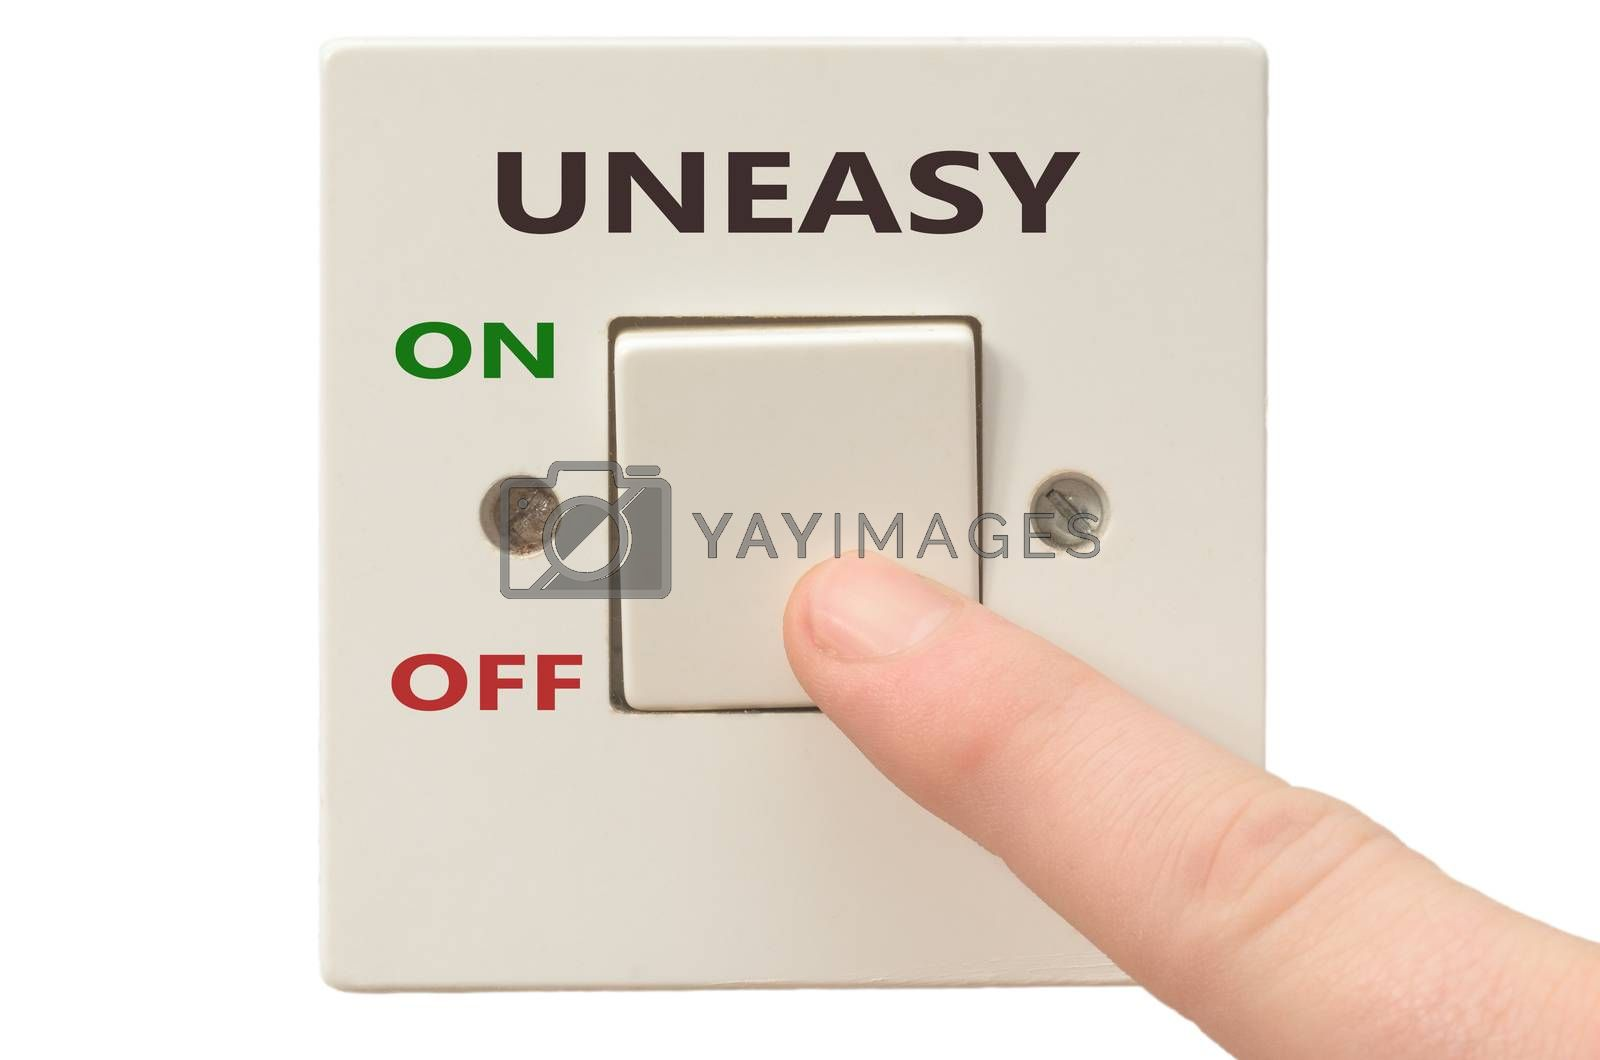 Turning off Uneasy with finger on electrical switch